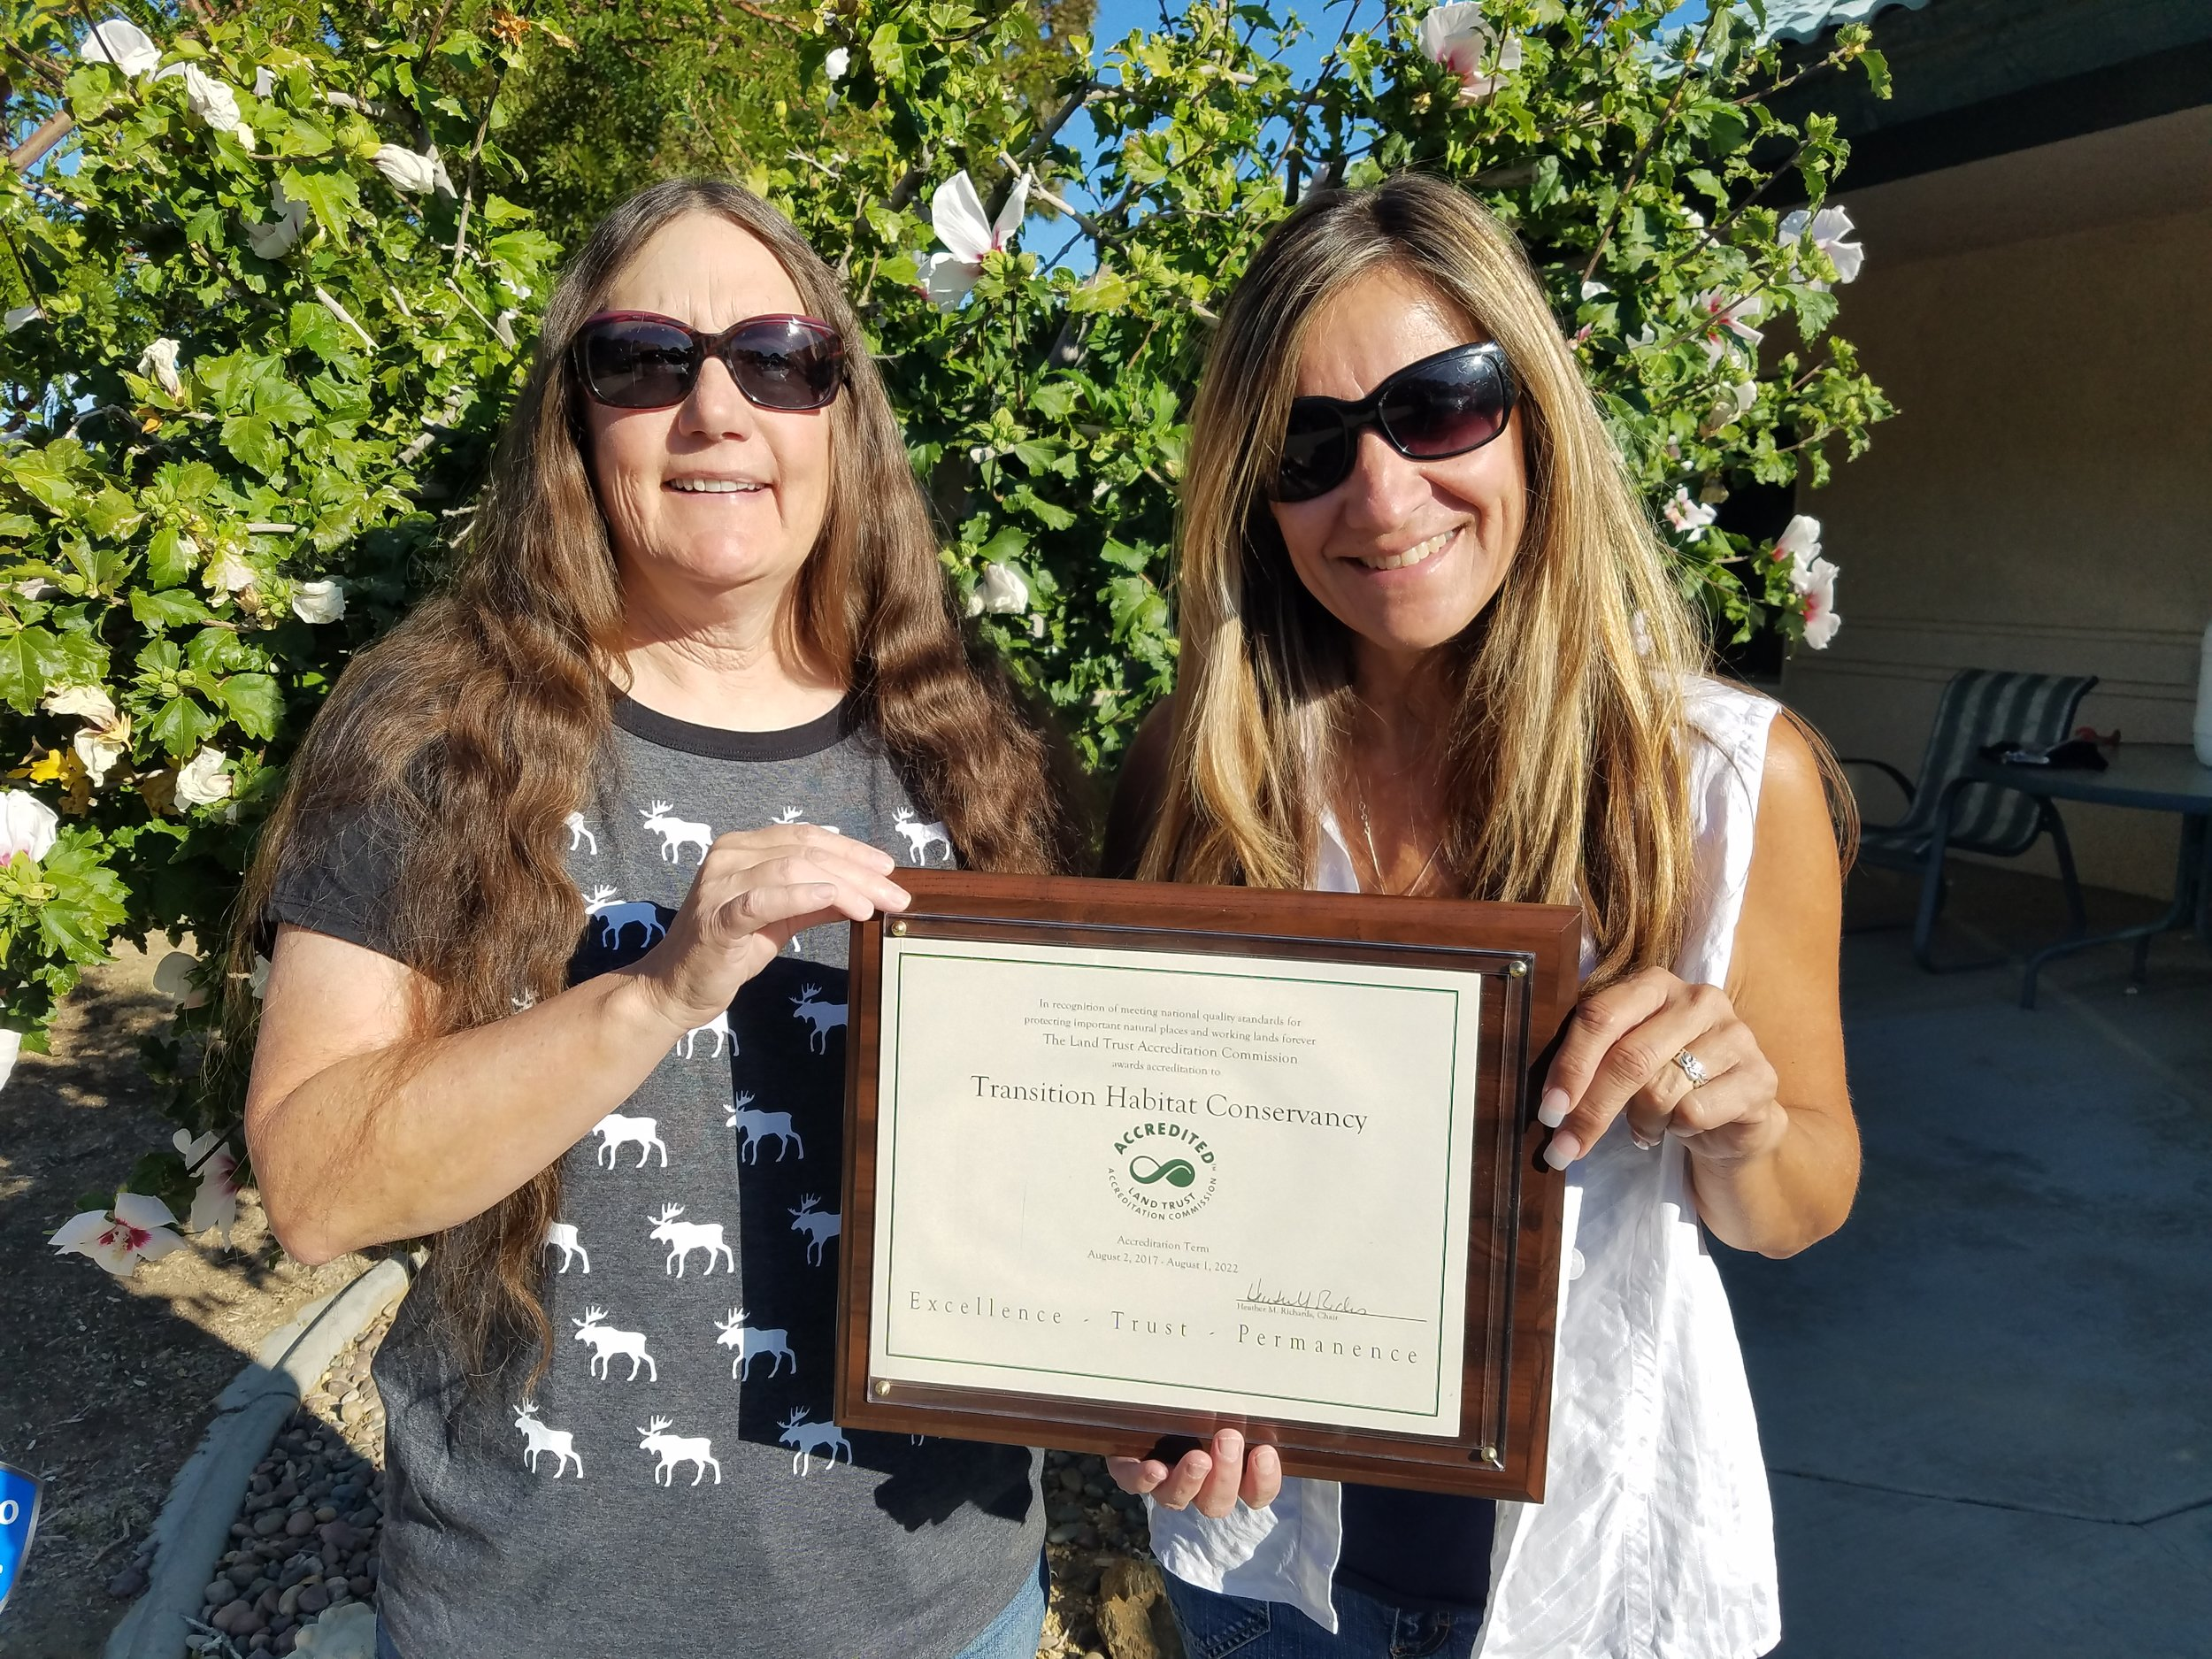 Founding Board Members, Jill Bays and Carol Hill, proudly display the accreditation certificate.